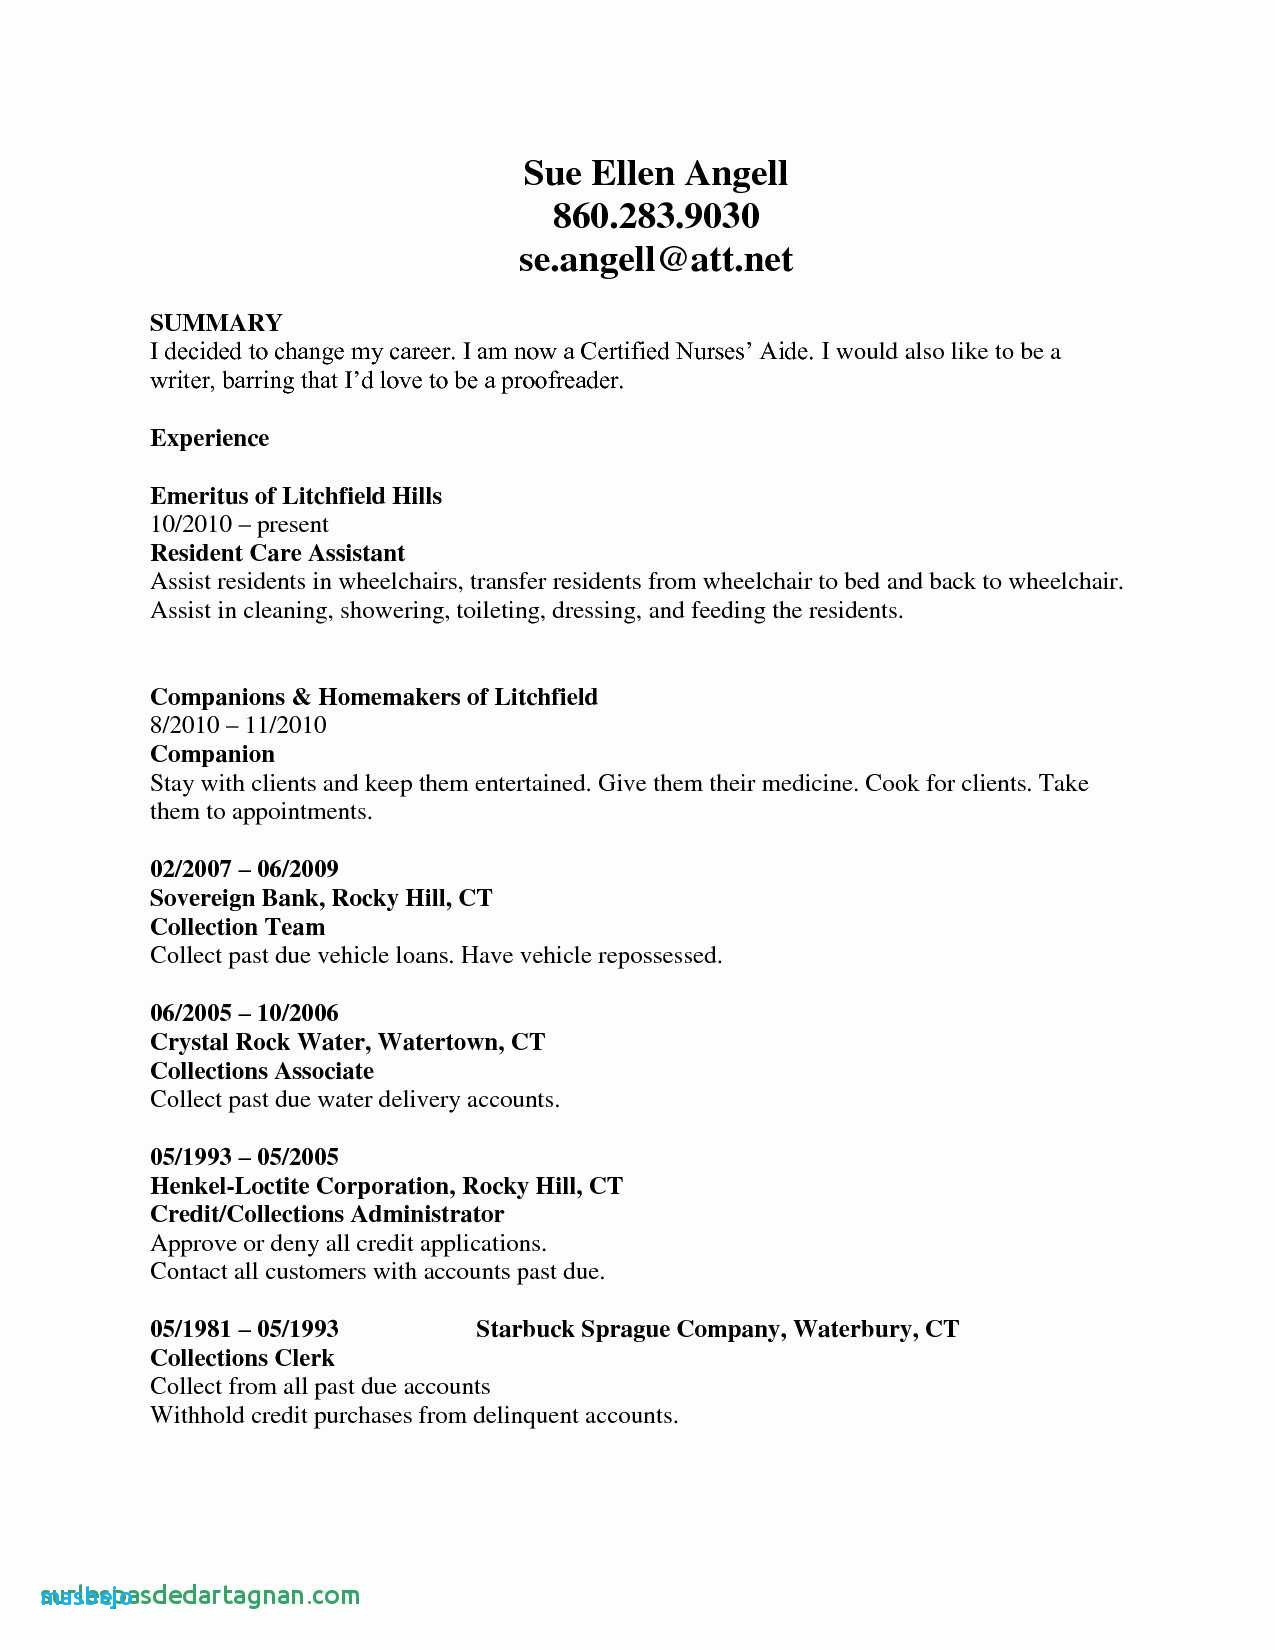 Cna Resumes with No Experience - Sample Resume for Cna with No Previous Experience Valid Resume